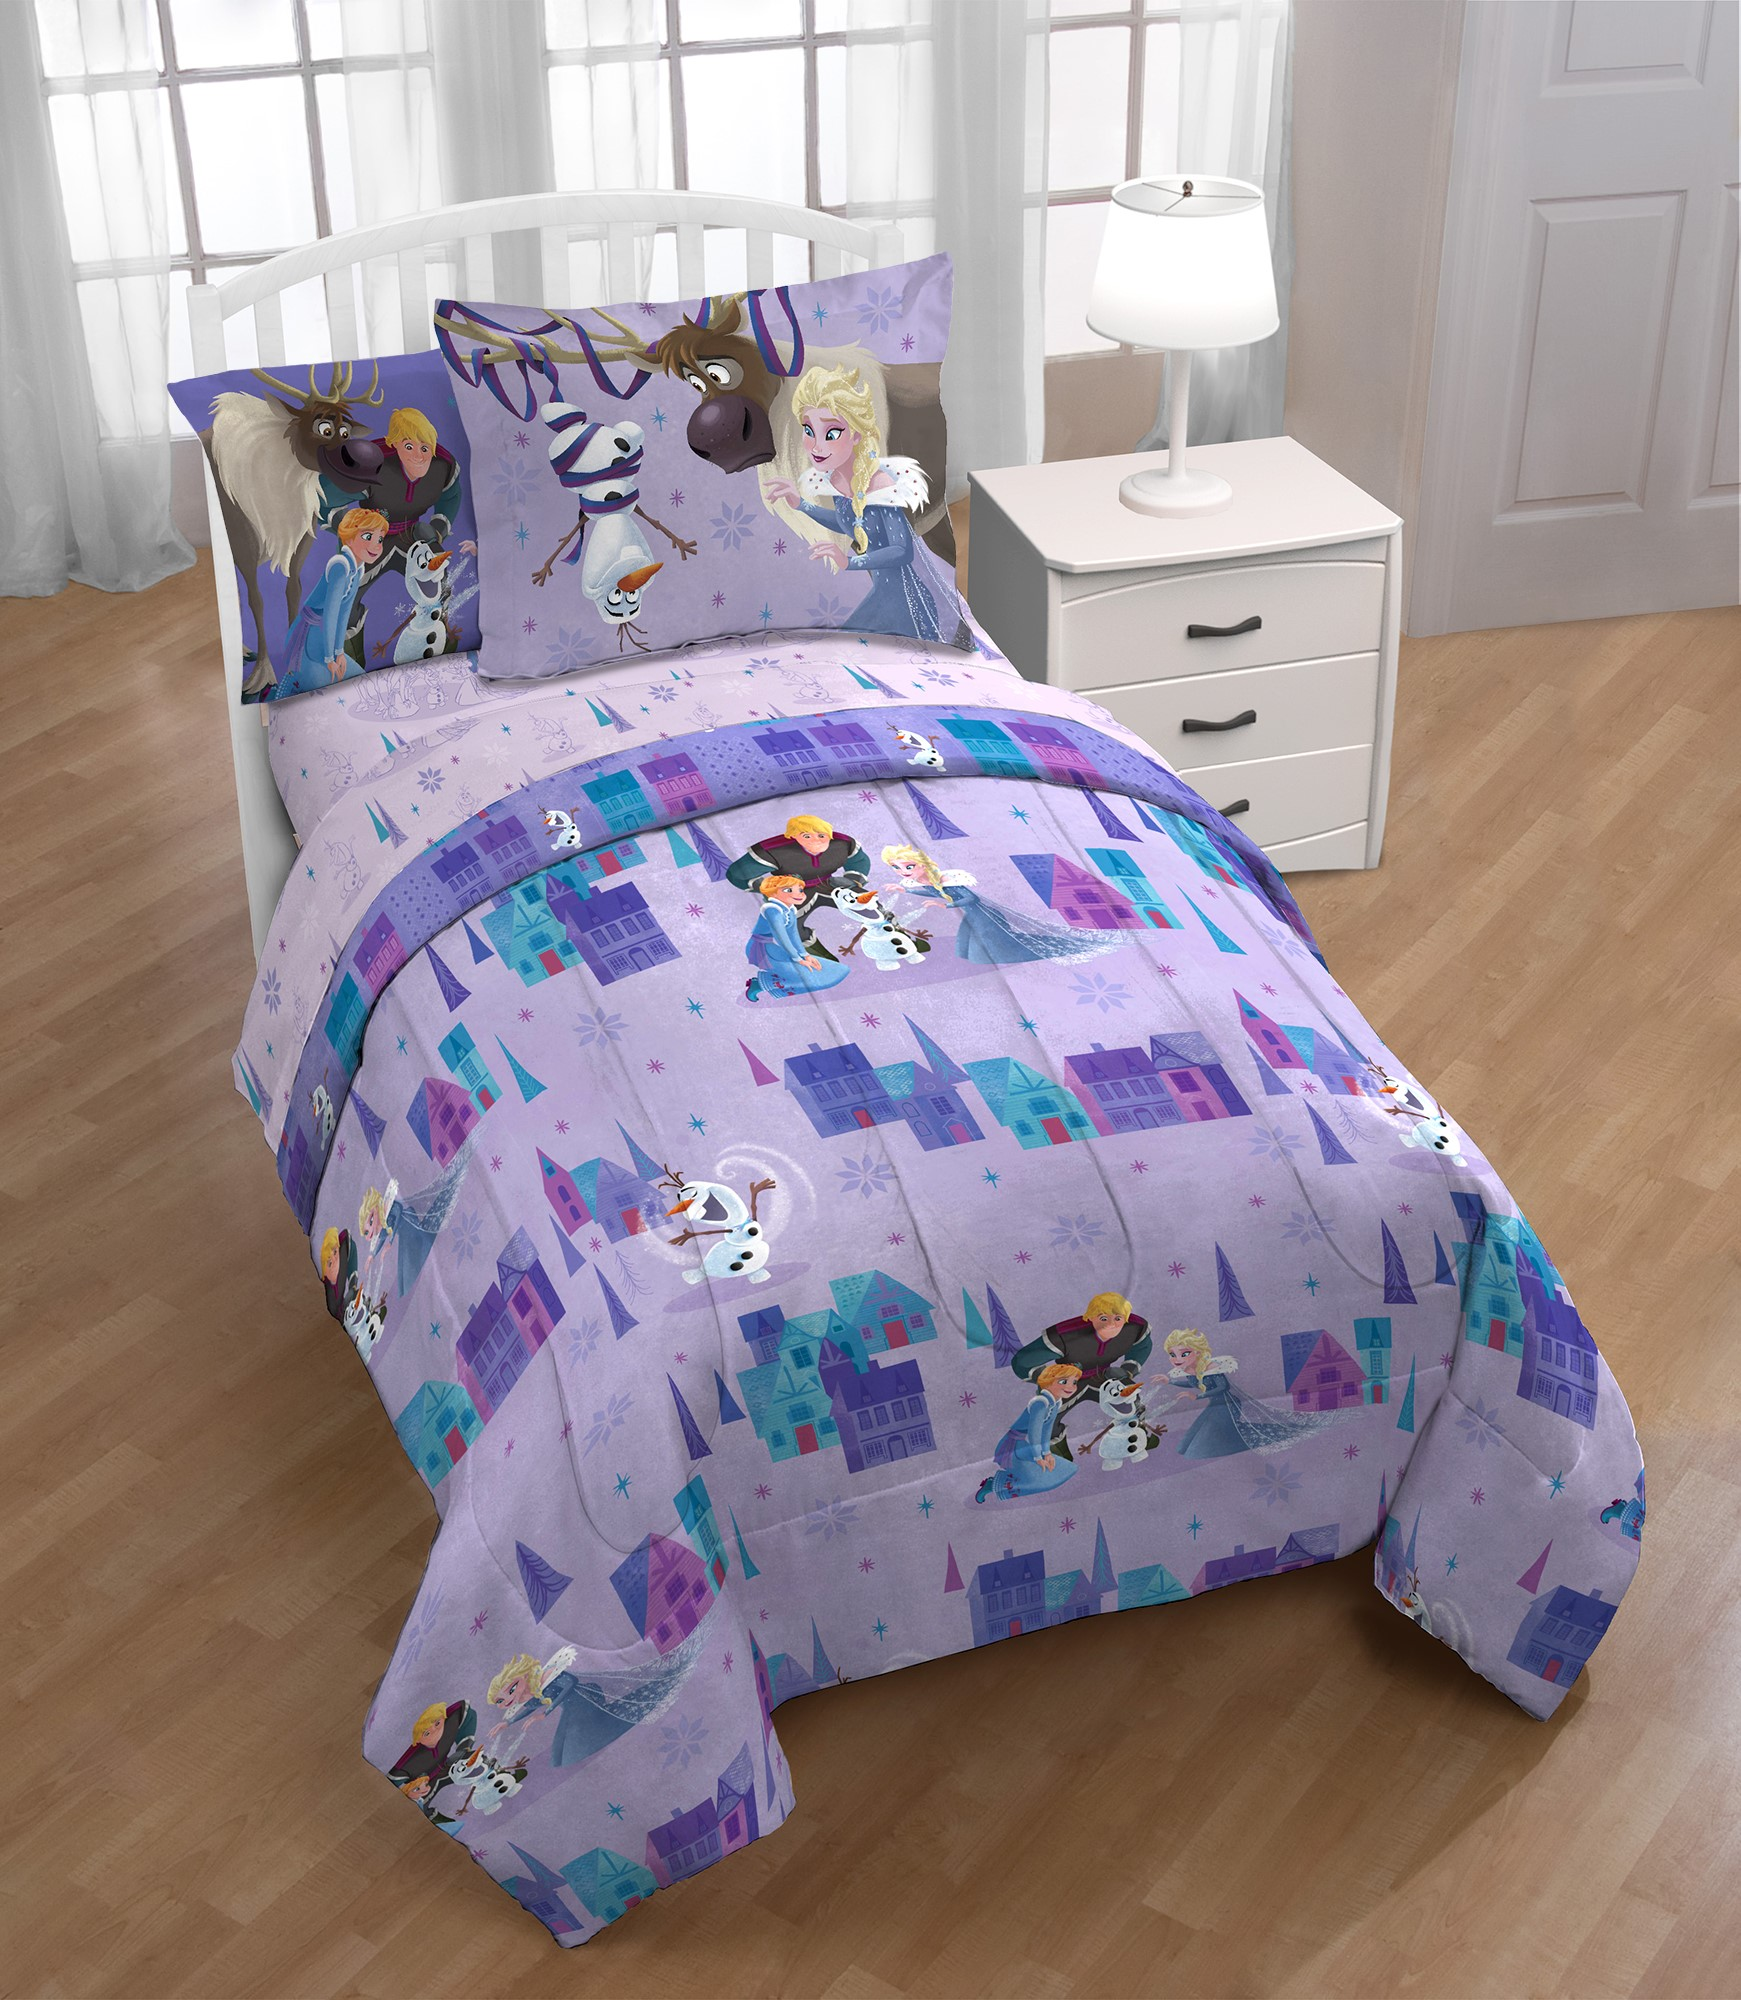 Disney Frozen Olaf �Family Ties Twin Bed in a Bag Bedding Set with Bonus Tote by Franco Manufacturing